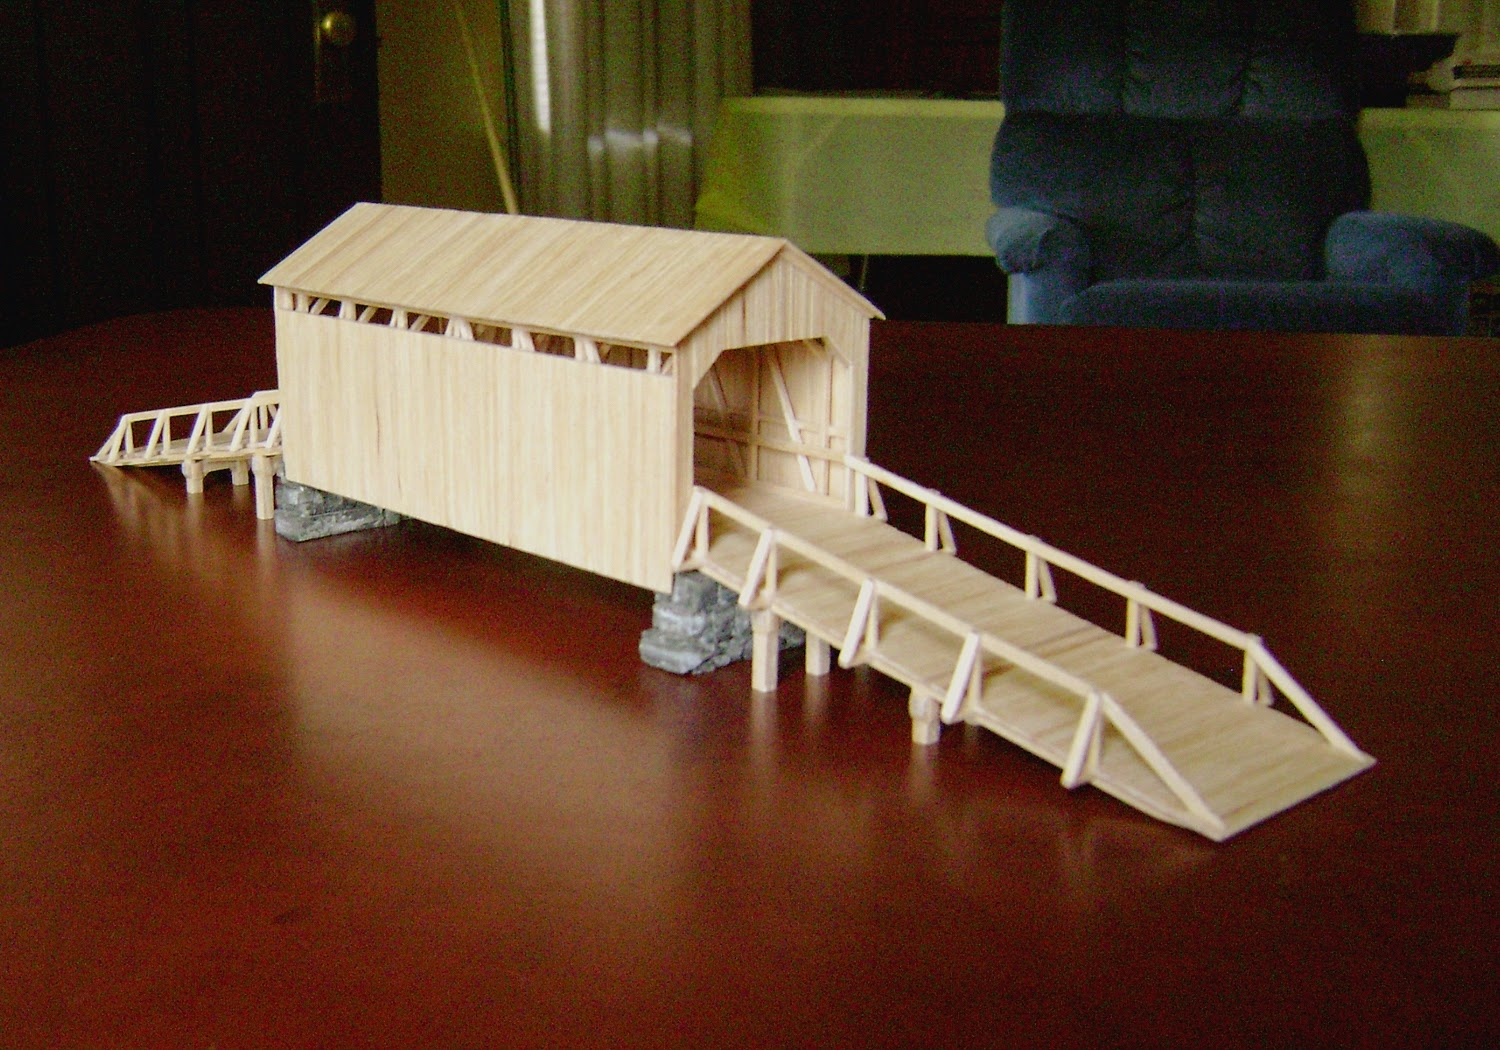 Toothpick bridge templates gallery template design ideas for West out of best making ideas